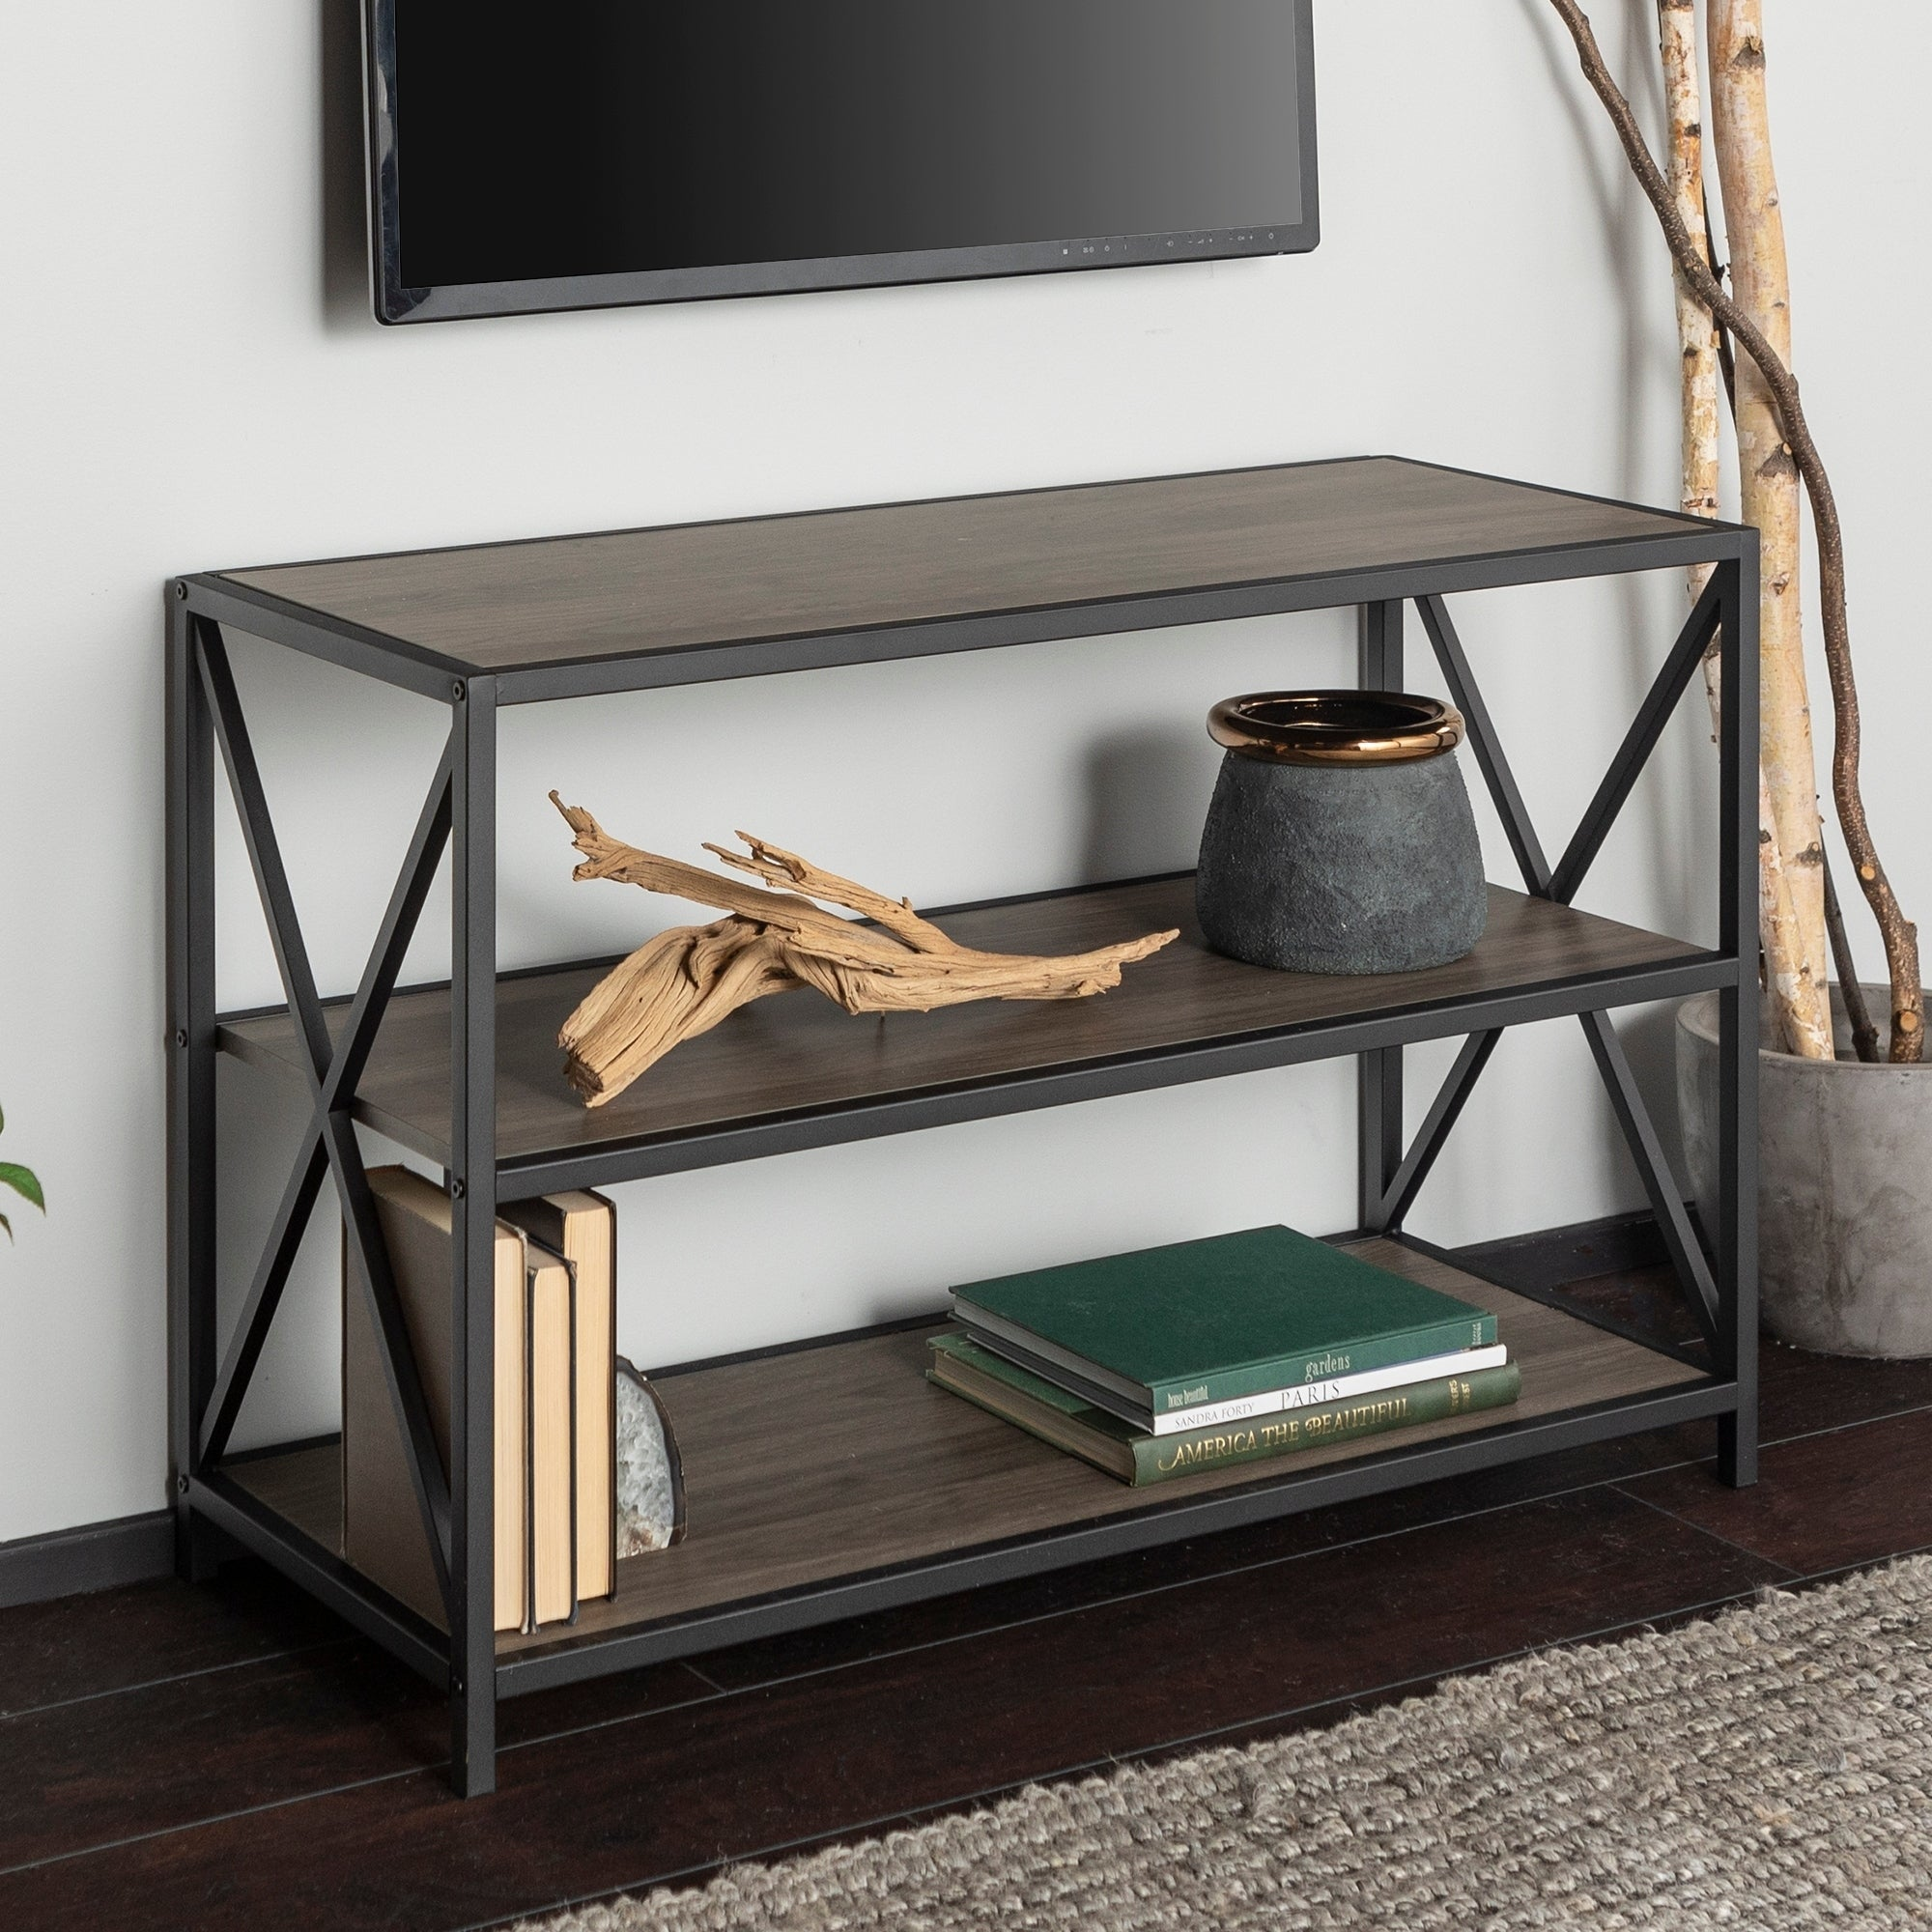 Buy Bookshelves Bookcases Online At Overstock Our Best